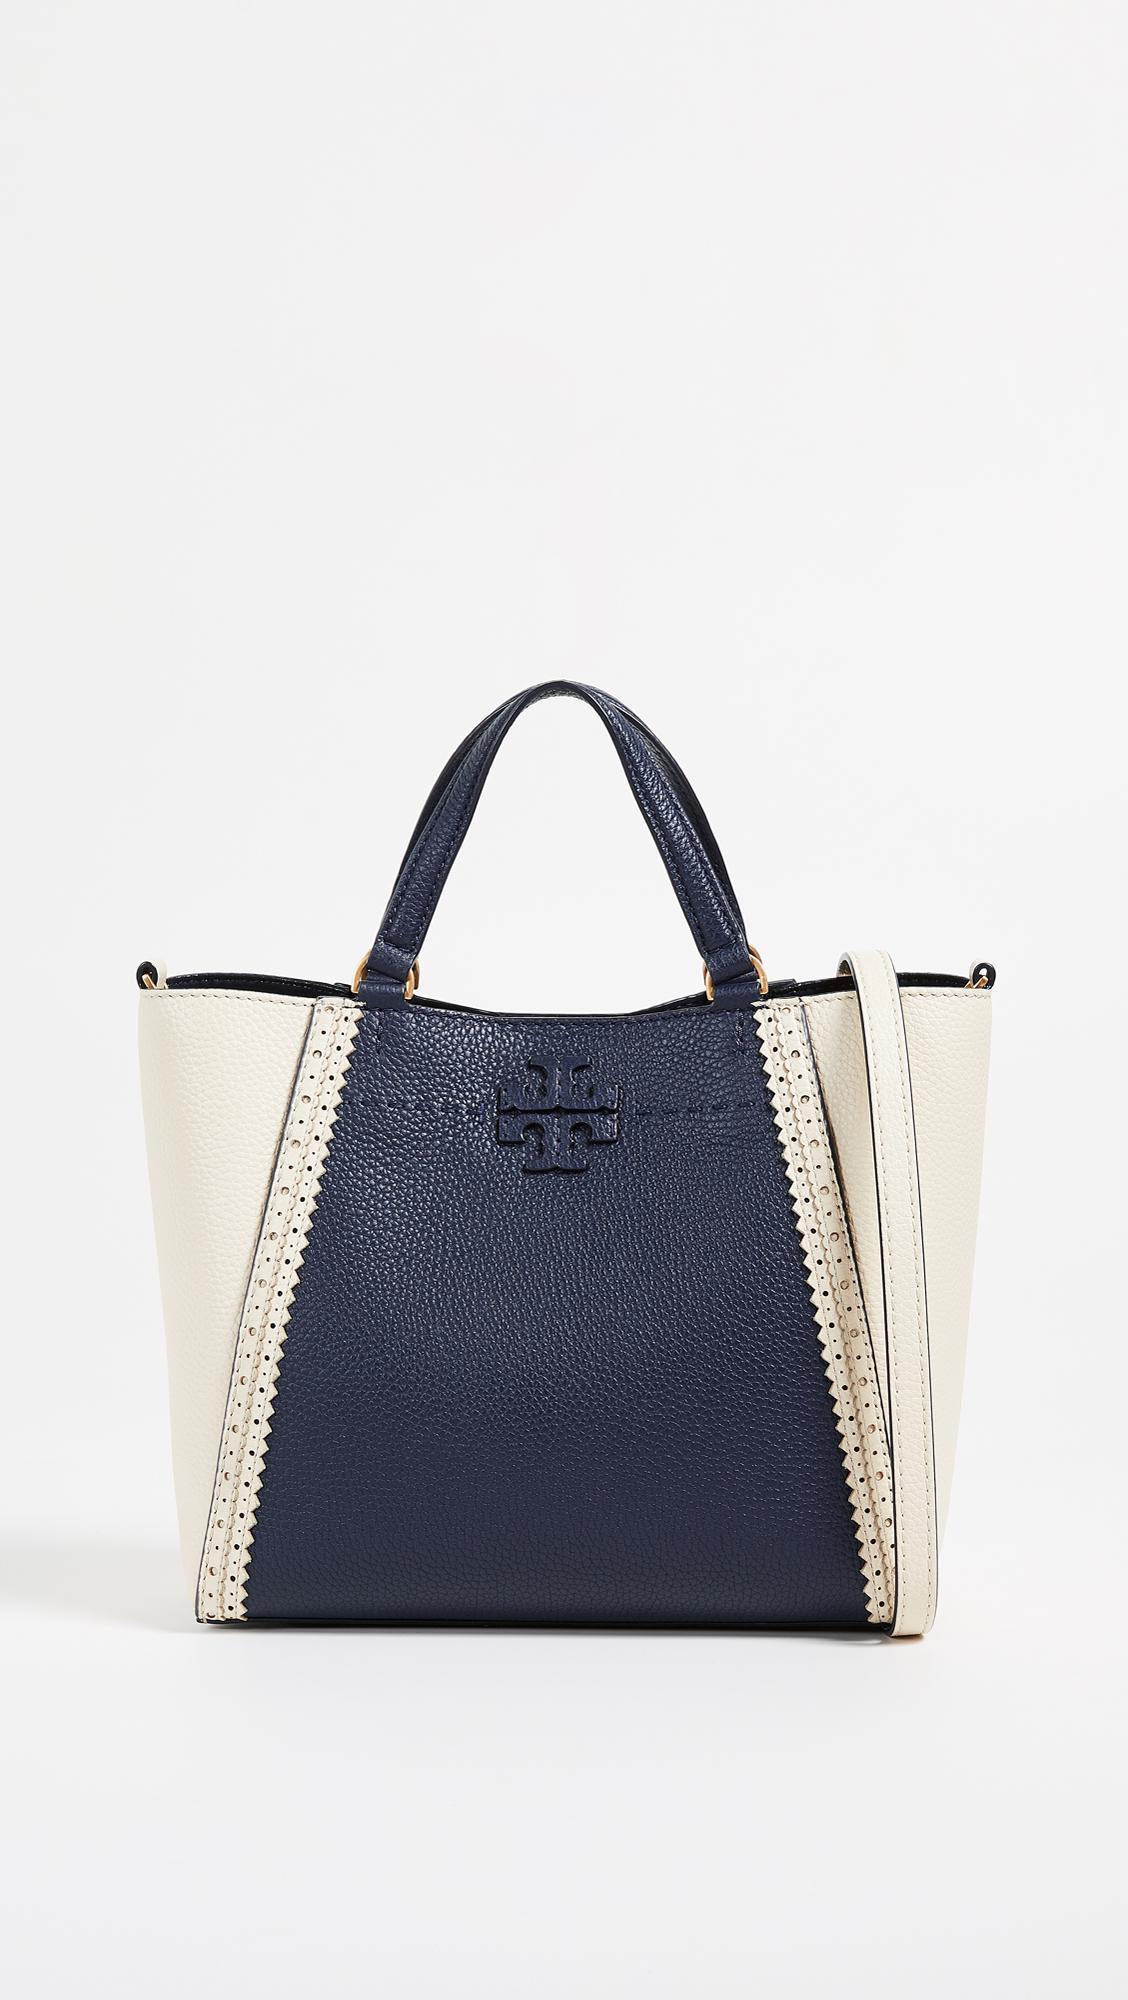 fbd25b137372 Lyst - Tory Burch Mcgraw Brogue Small Caryall Tote in Blue